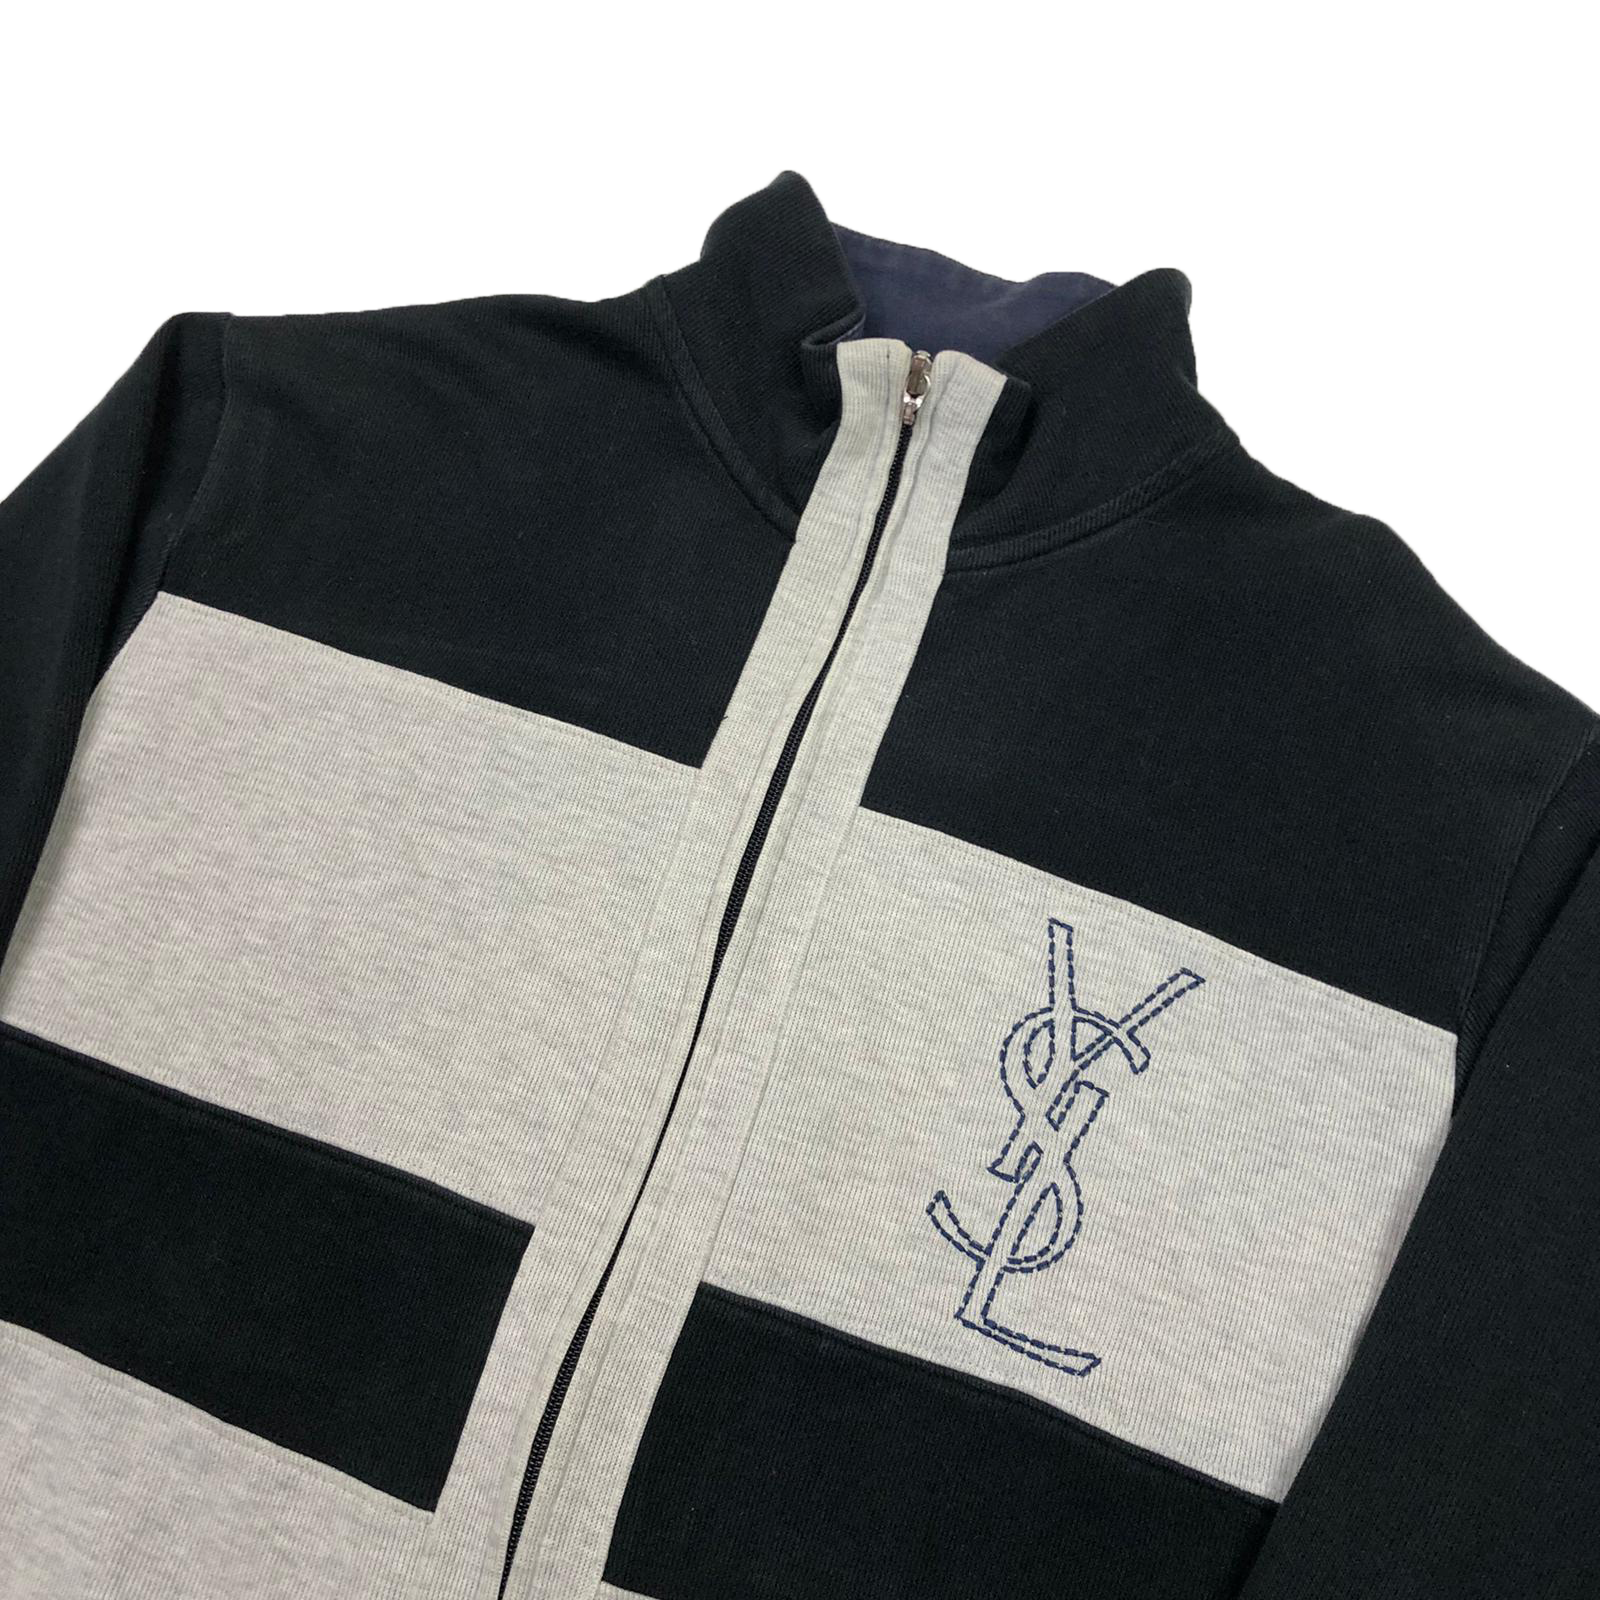 YSL full zip sweatshirt